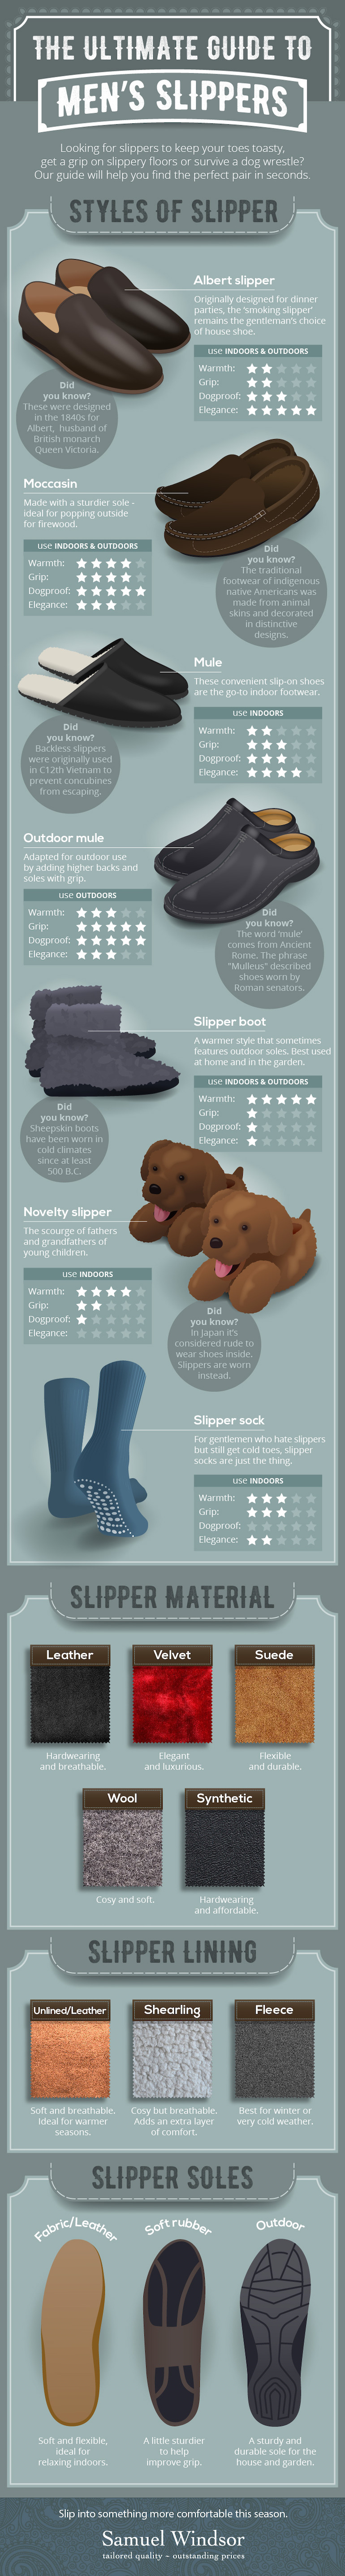 7 Styles Of Slippers For Men - Infographic